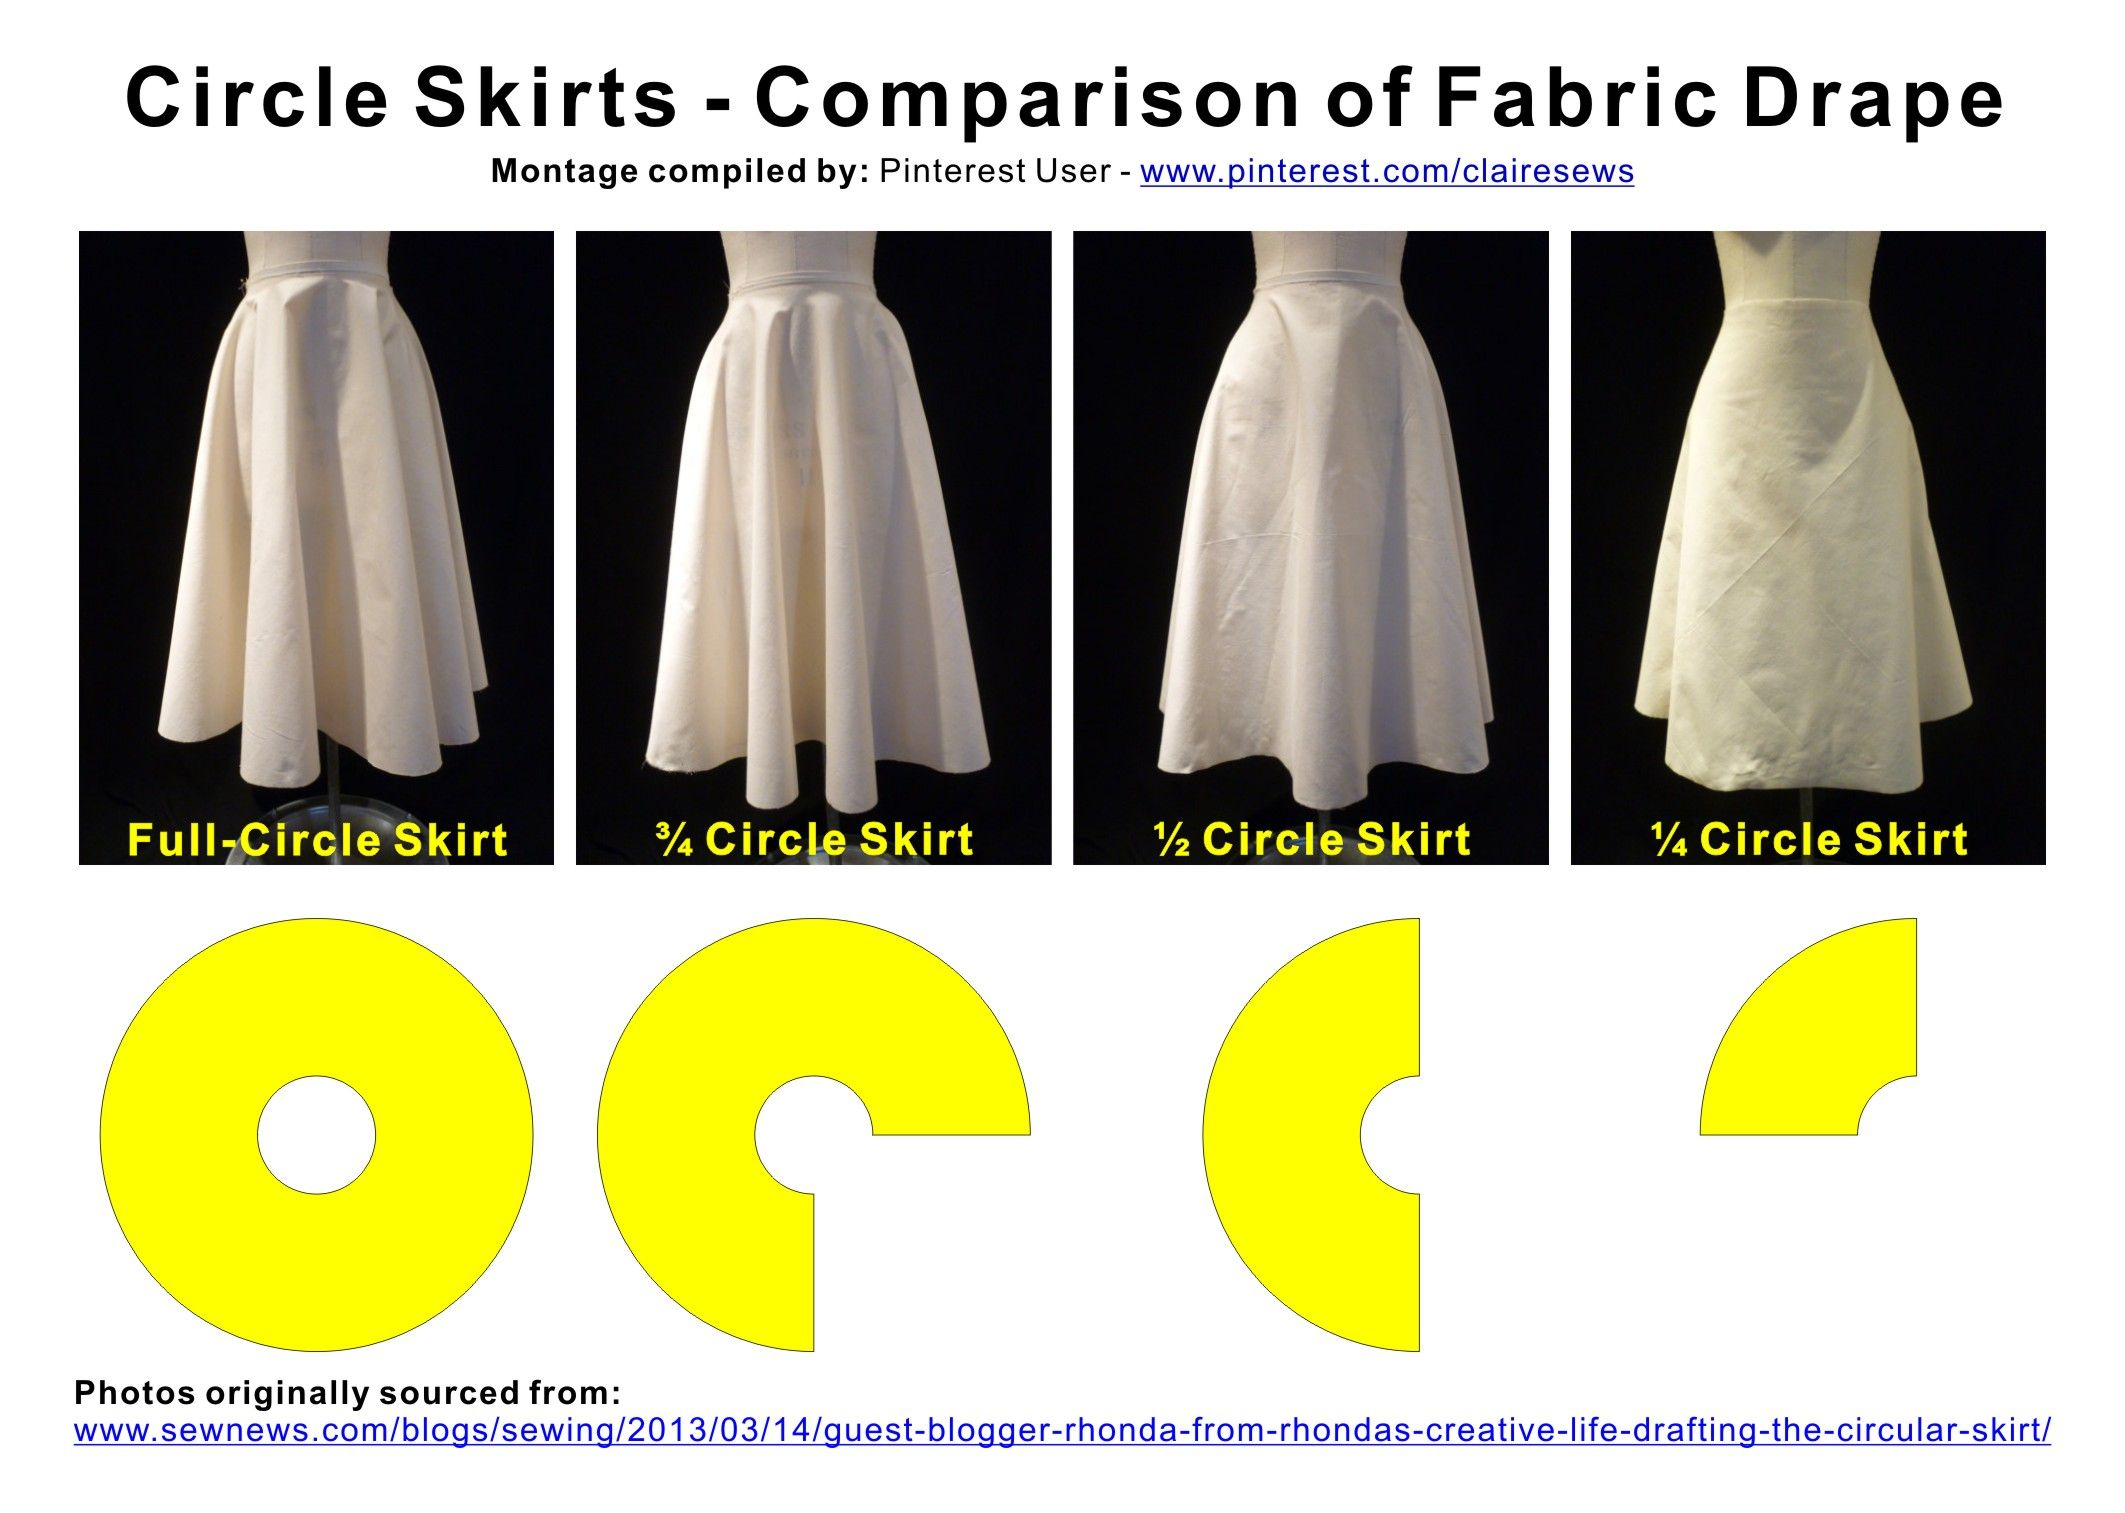 circle skirts comparison of fabric drape in full 190 189